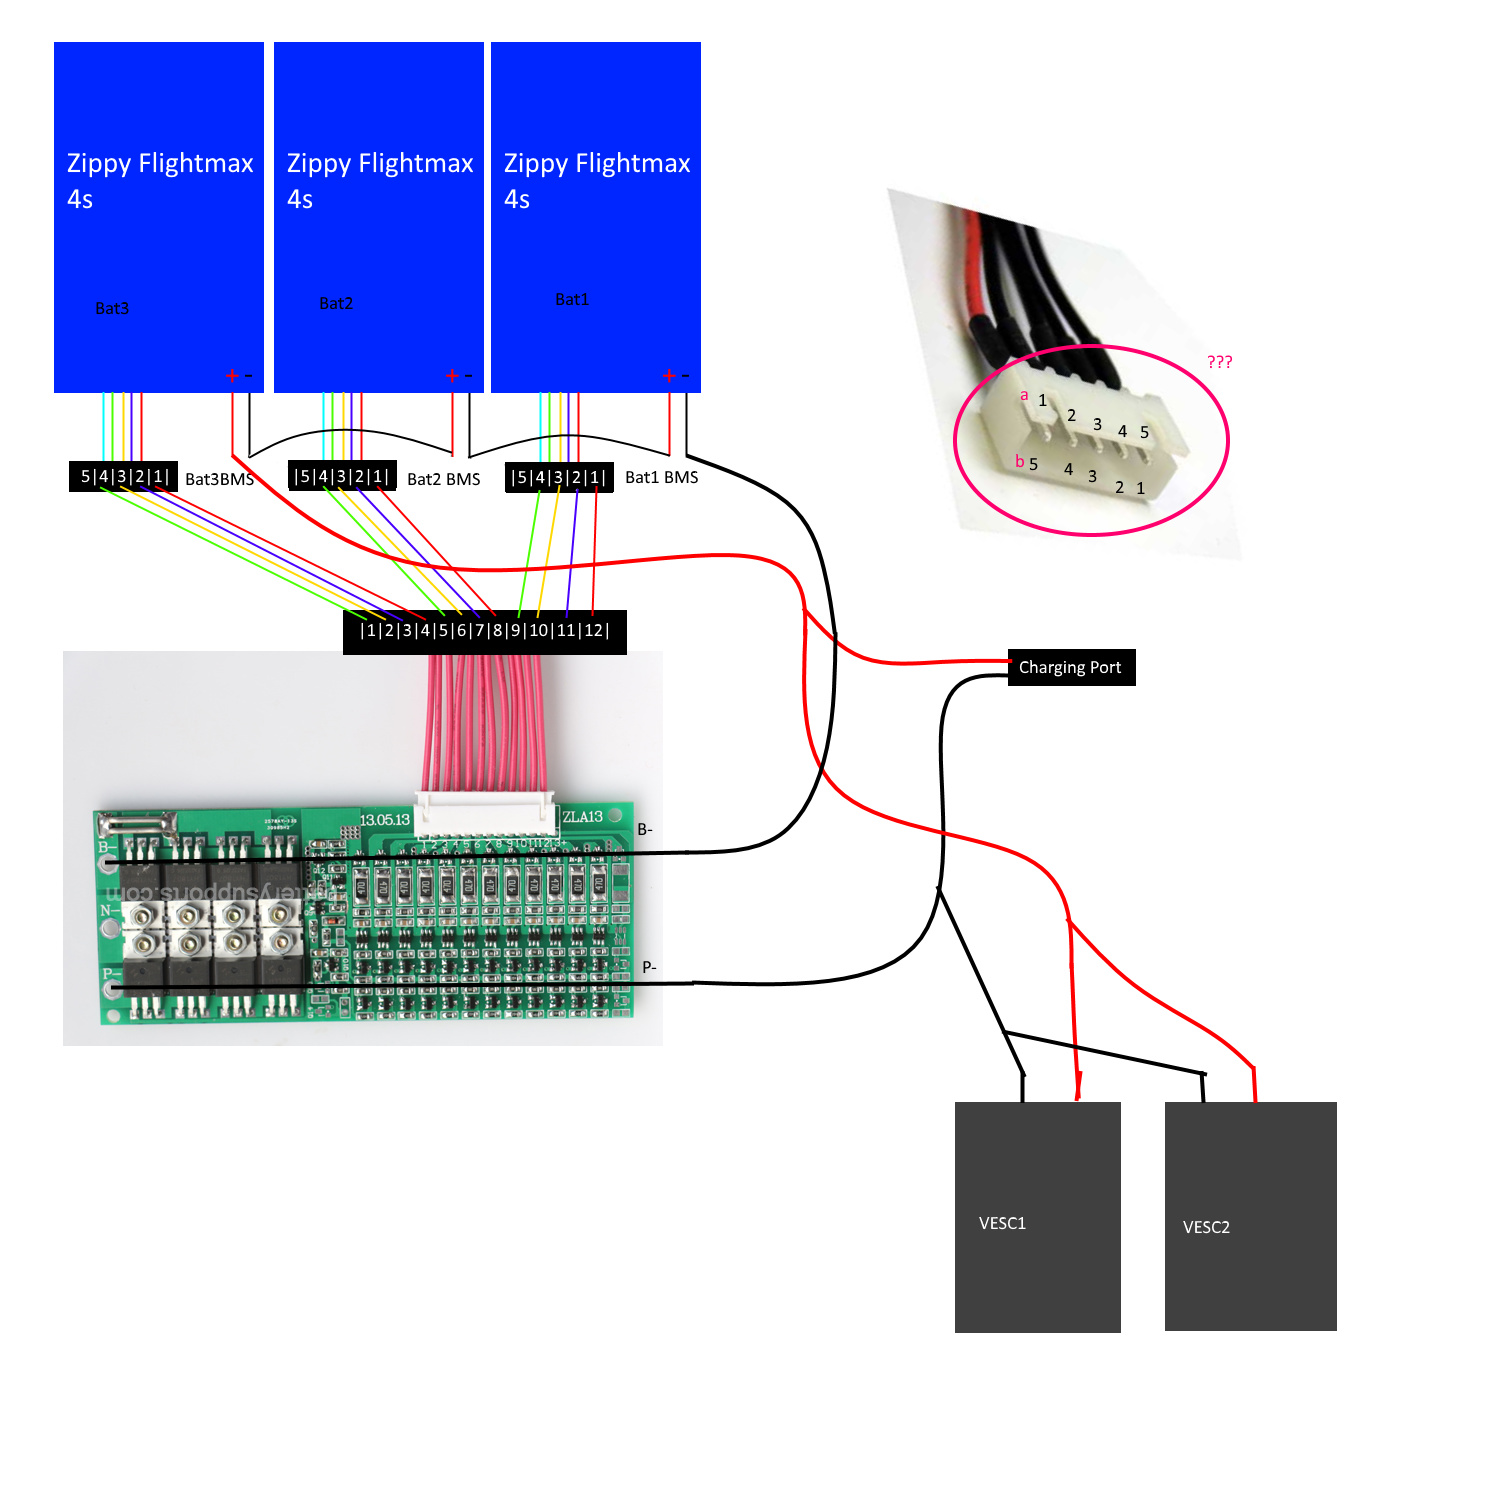 Wiring Up The Supower 12s Bms Esk8 Electronics Electric Skateboard Builders Forum Learn How To Build Your Own E Board